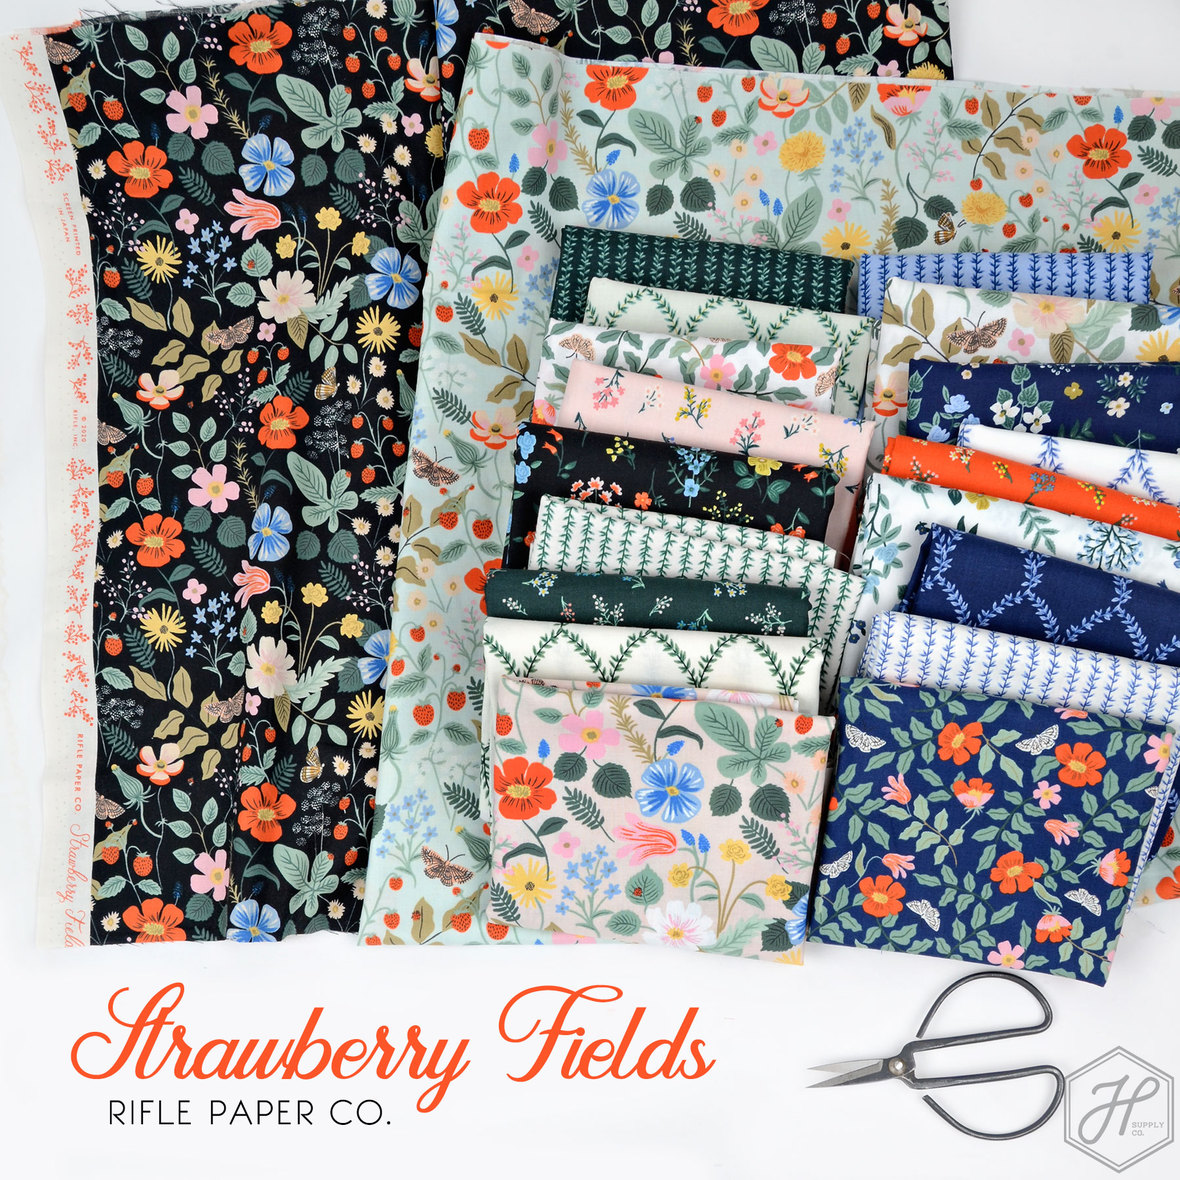 Strawberry-Fields-Fabric-Rifle-Paper-Co-for-Cotton-and-Steel-at-Hawthorne-Supply-Co